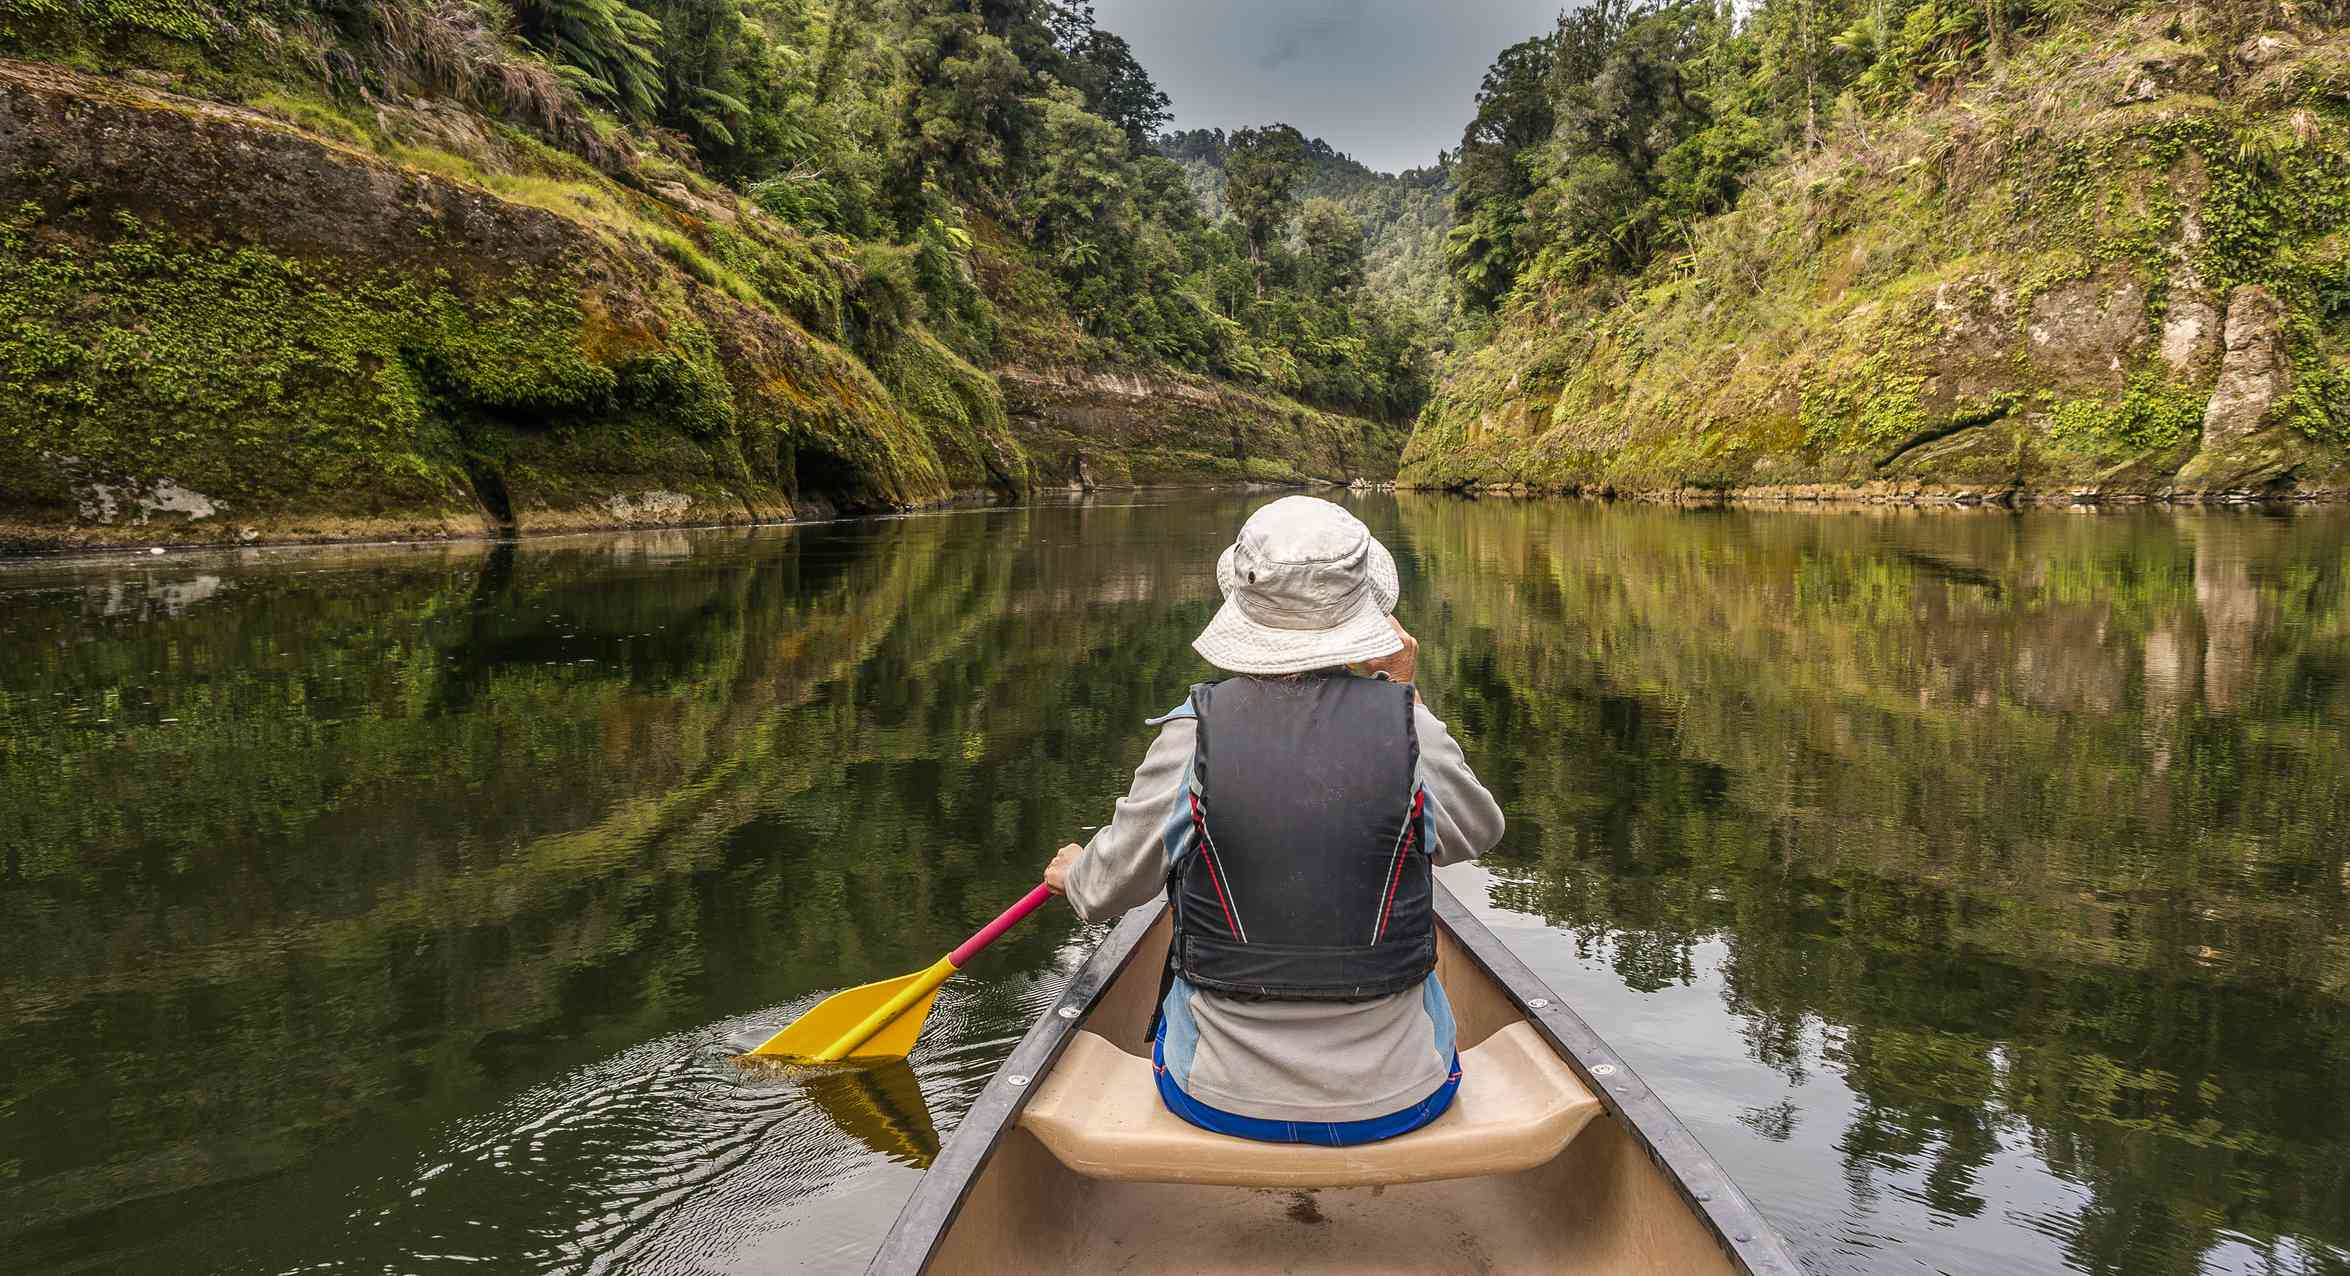 person sitting in a canoe on a river surrounded by grassy cliffs